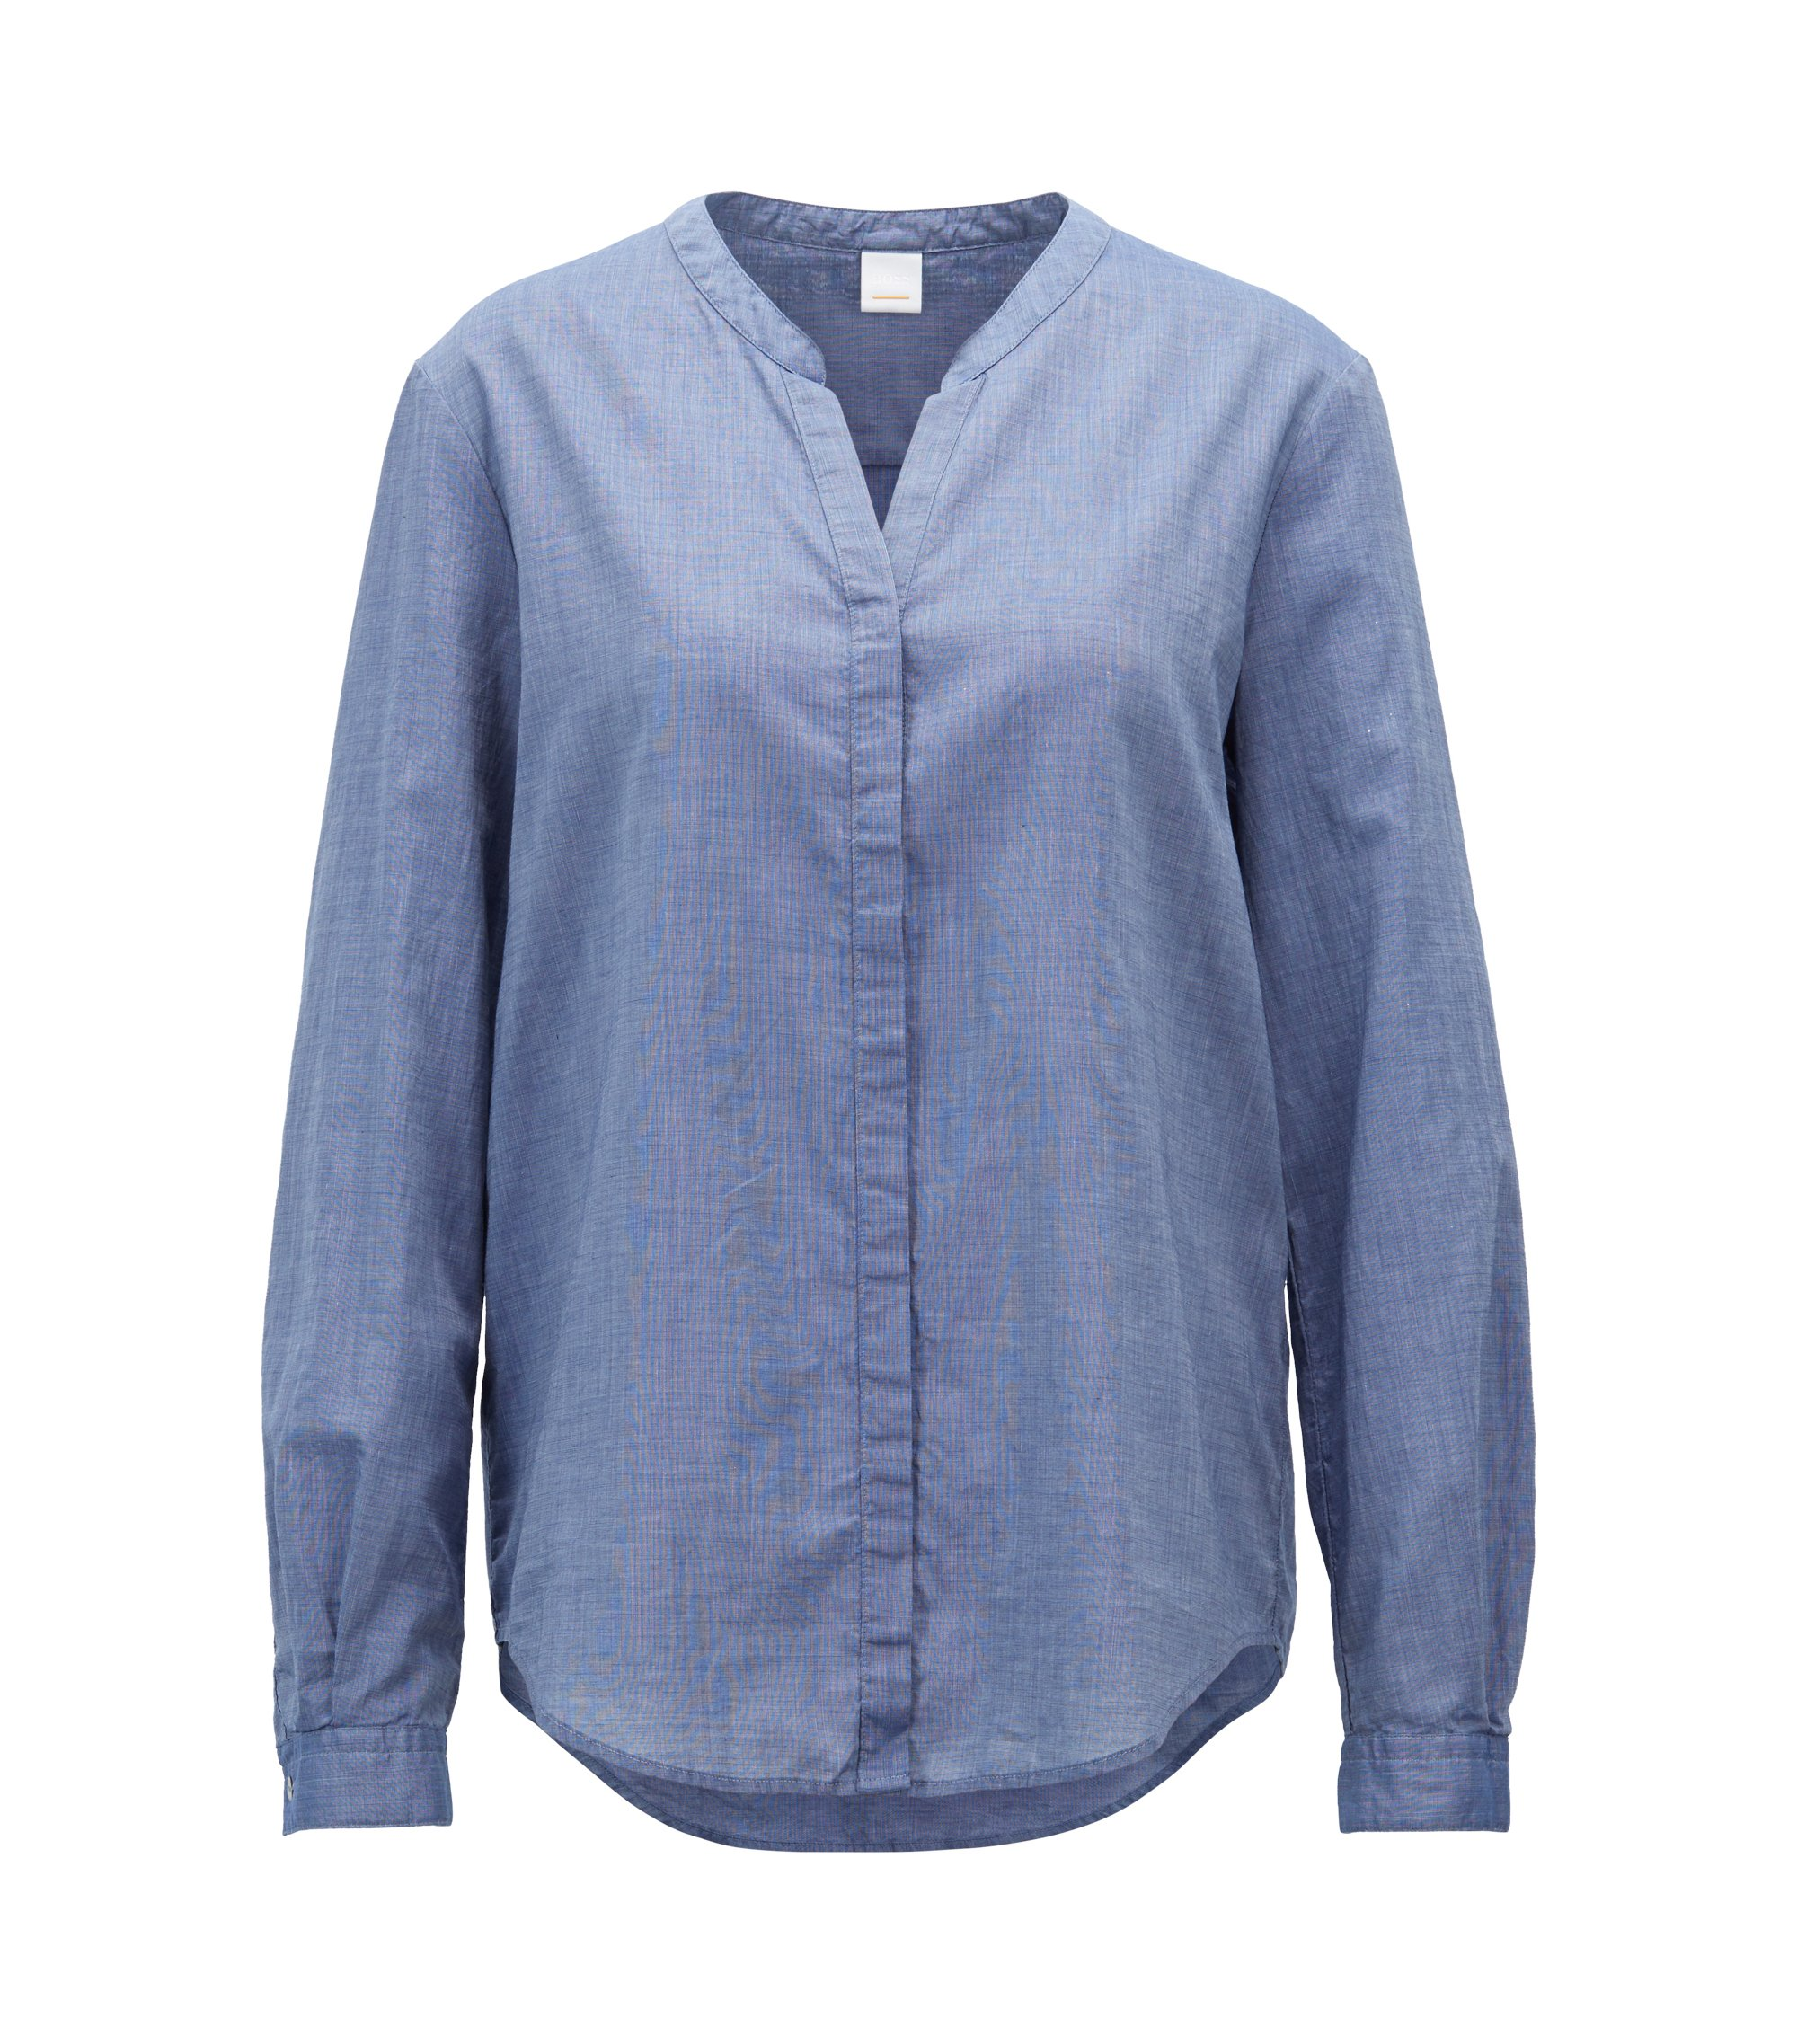 Relaxed-Fit Bluse aus Chambray, Blau